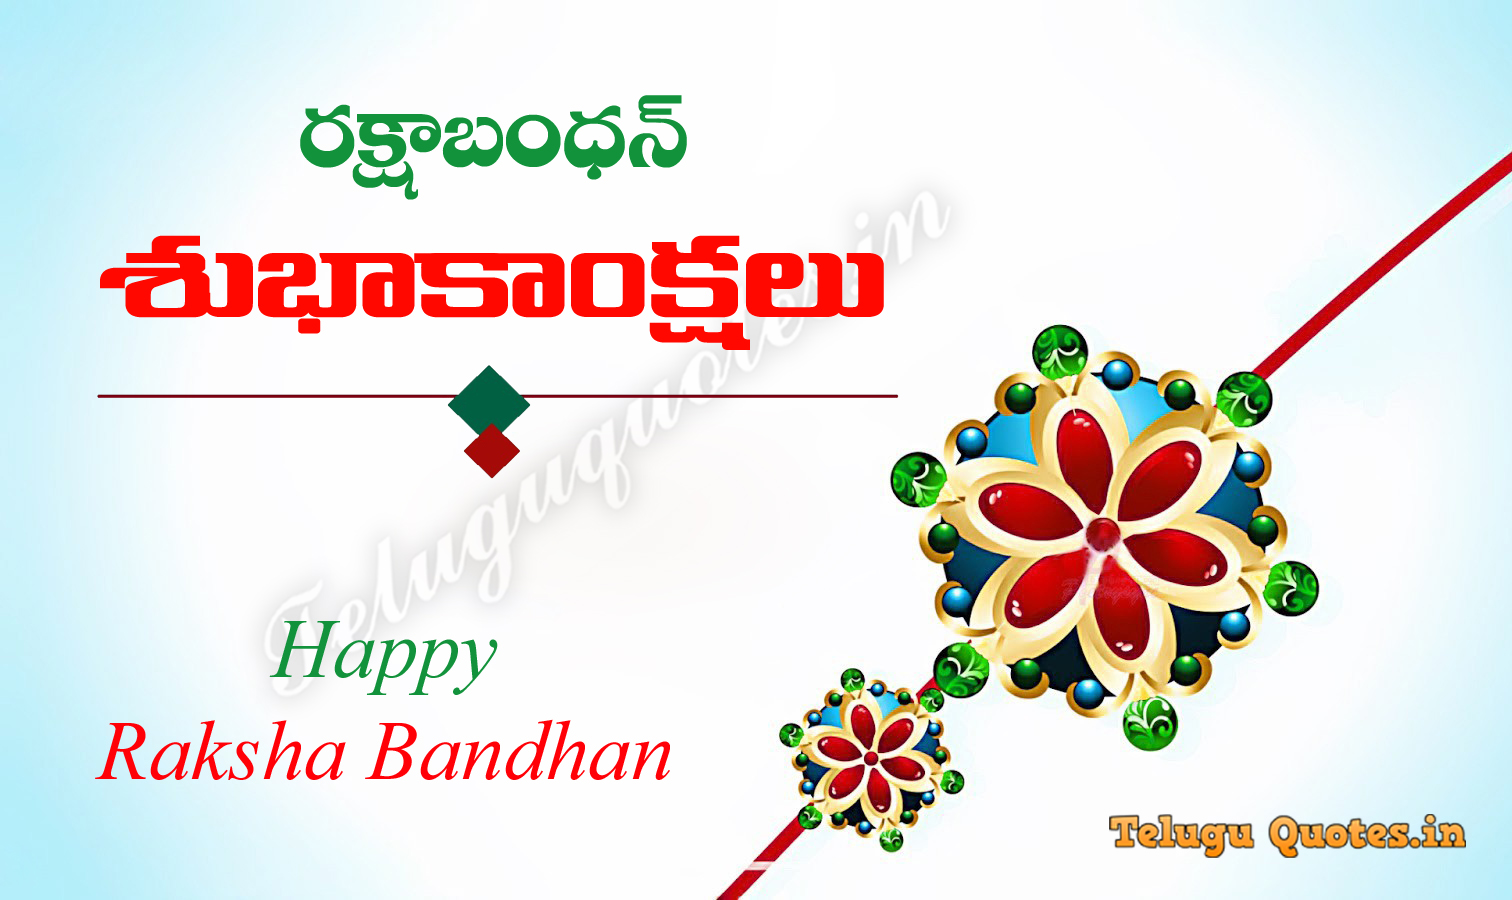 Happy raksha bandhan wishes for facebook telugu quotes happy raksha bandhan wishes greeting cards latest happy raksha bandhan sms quotes for brothers and sisters raksha bandhan quotes wallpapers kristyandbryce Image collections